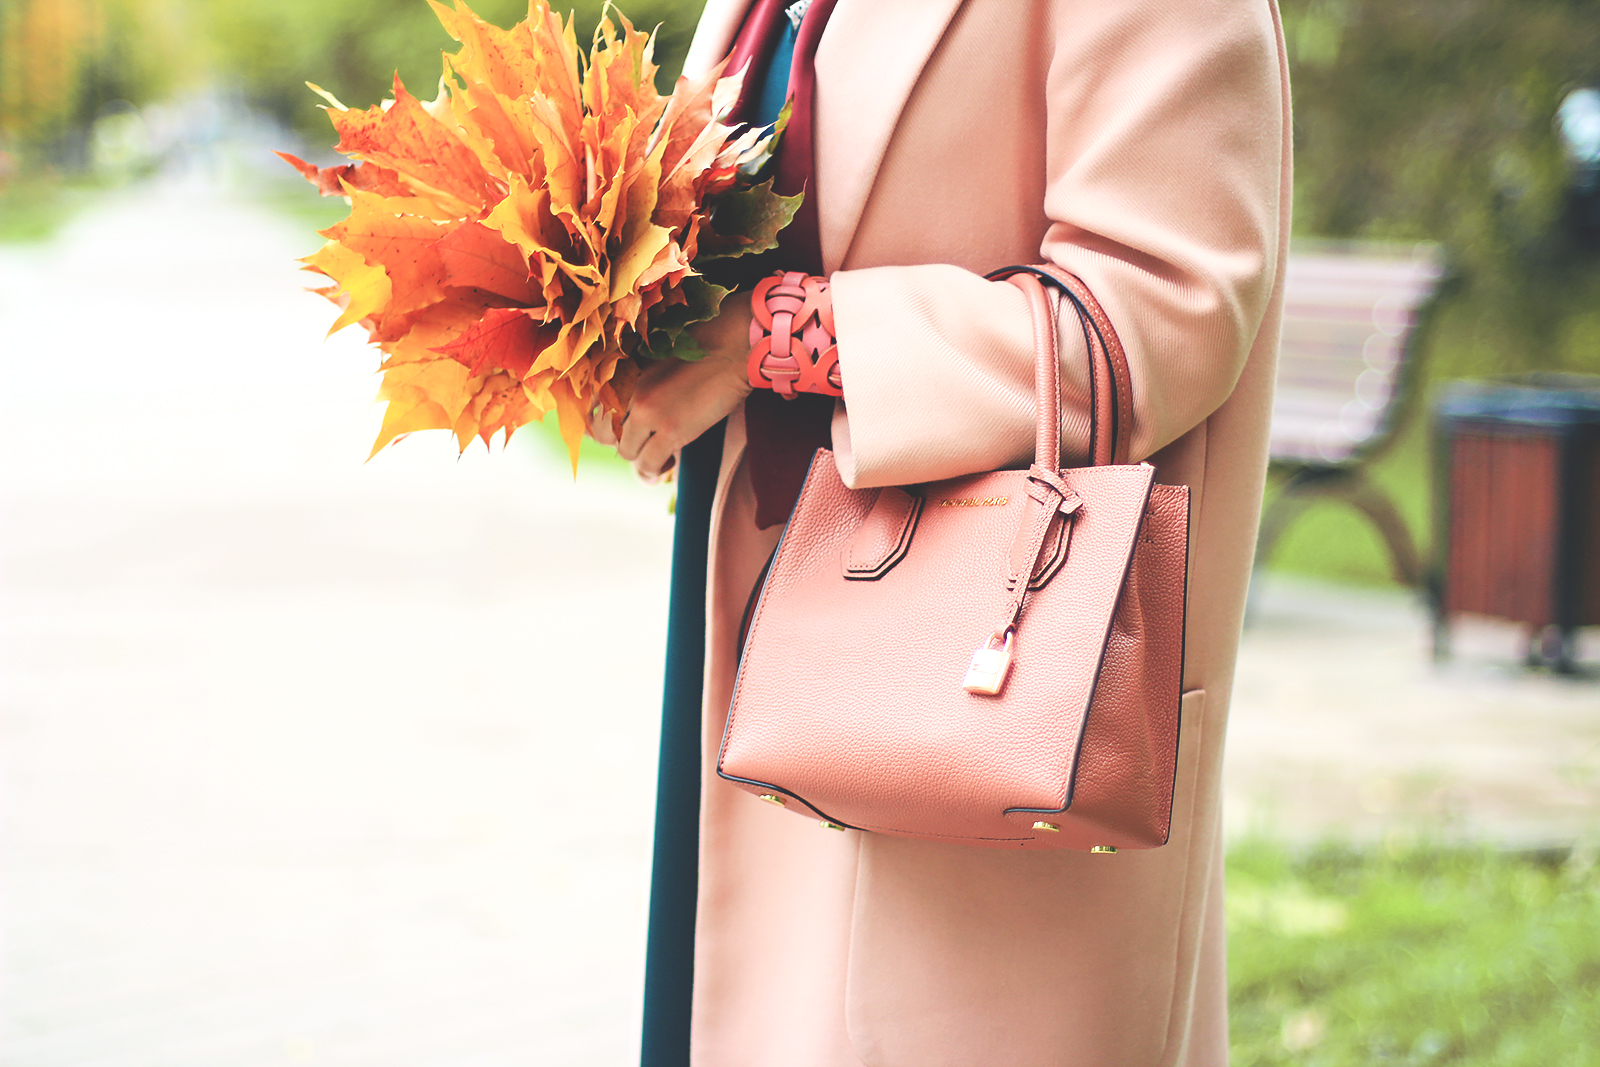 margarita_maslova_pink_coat_fall_colors_look_autumn_green_beret8